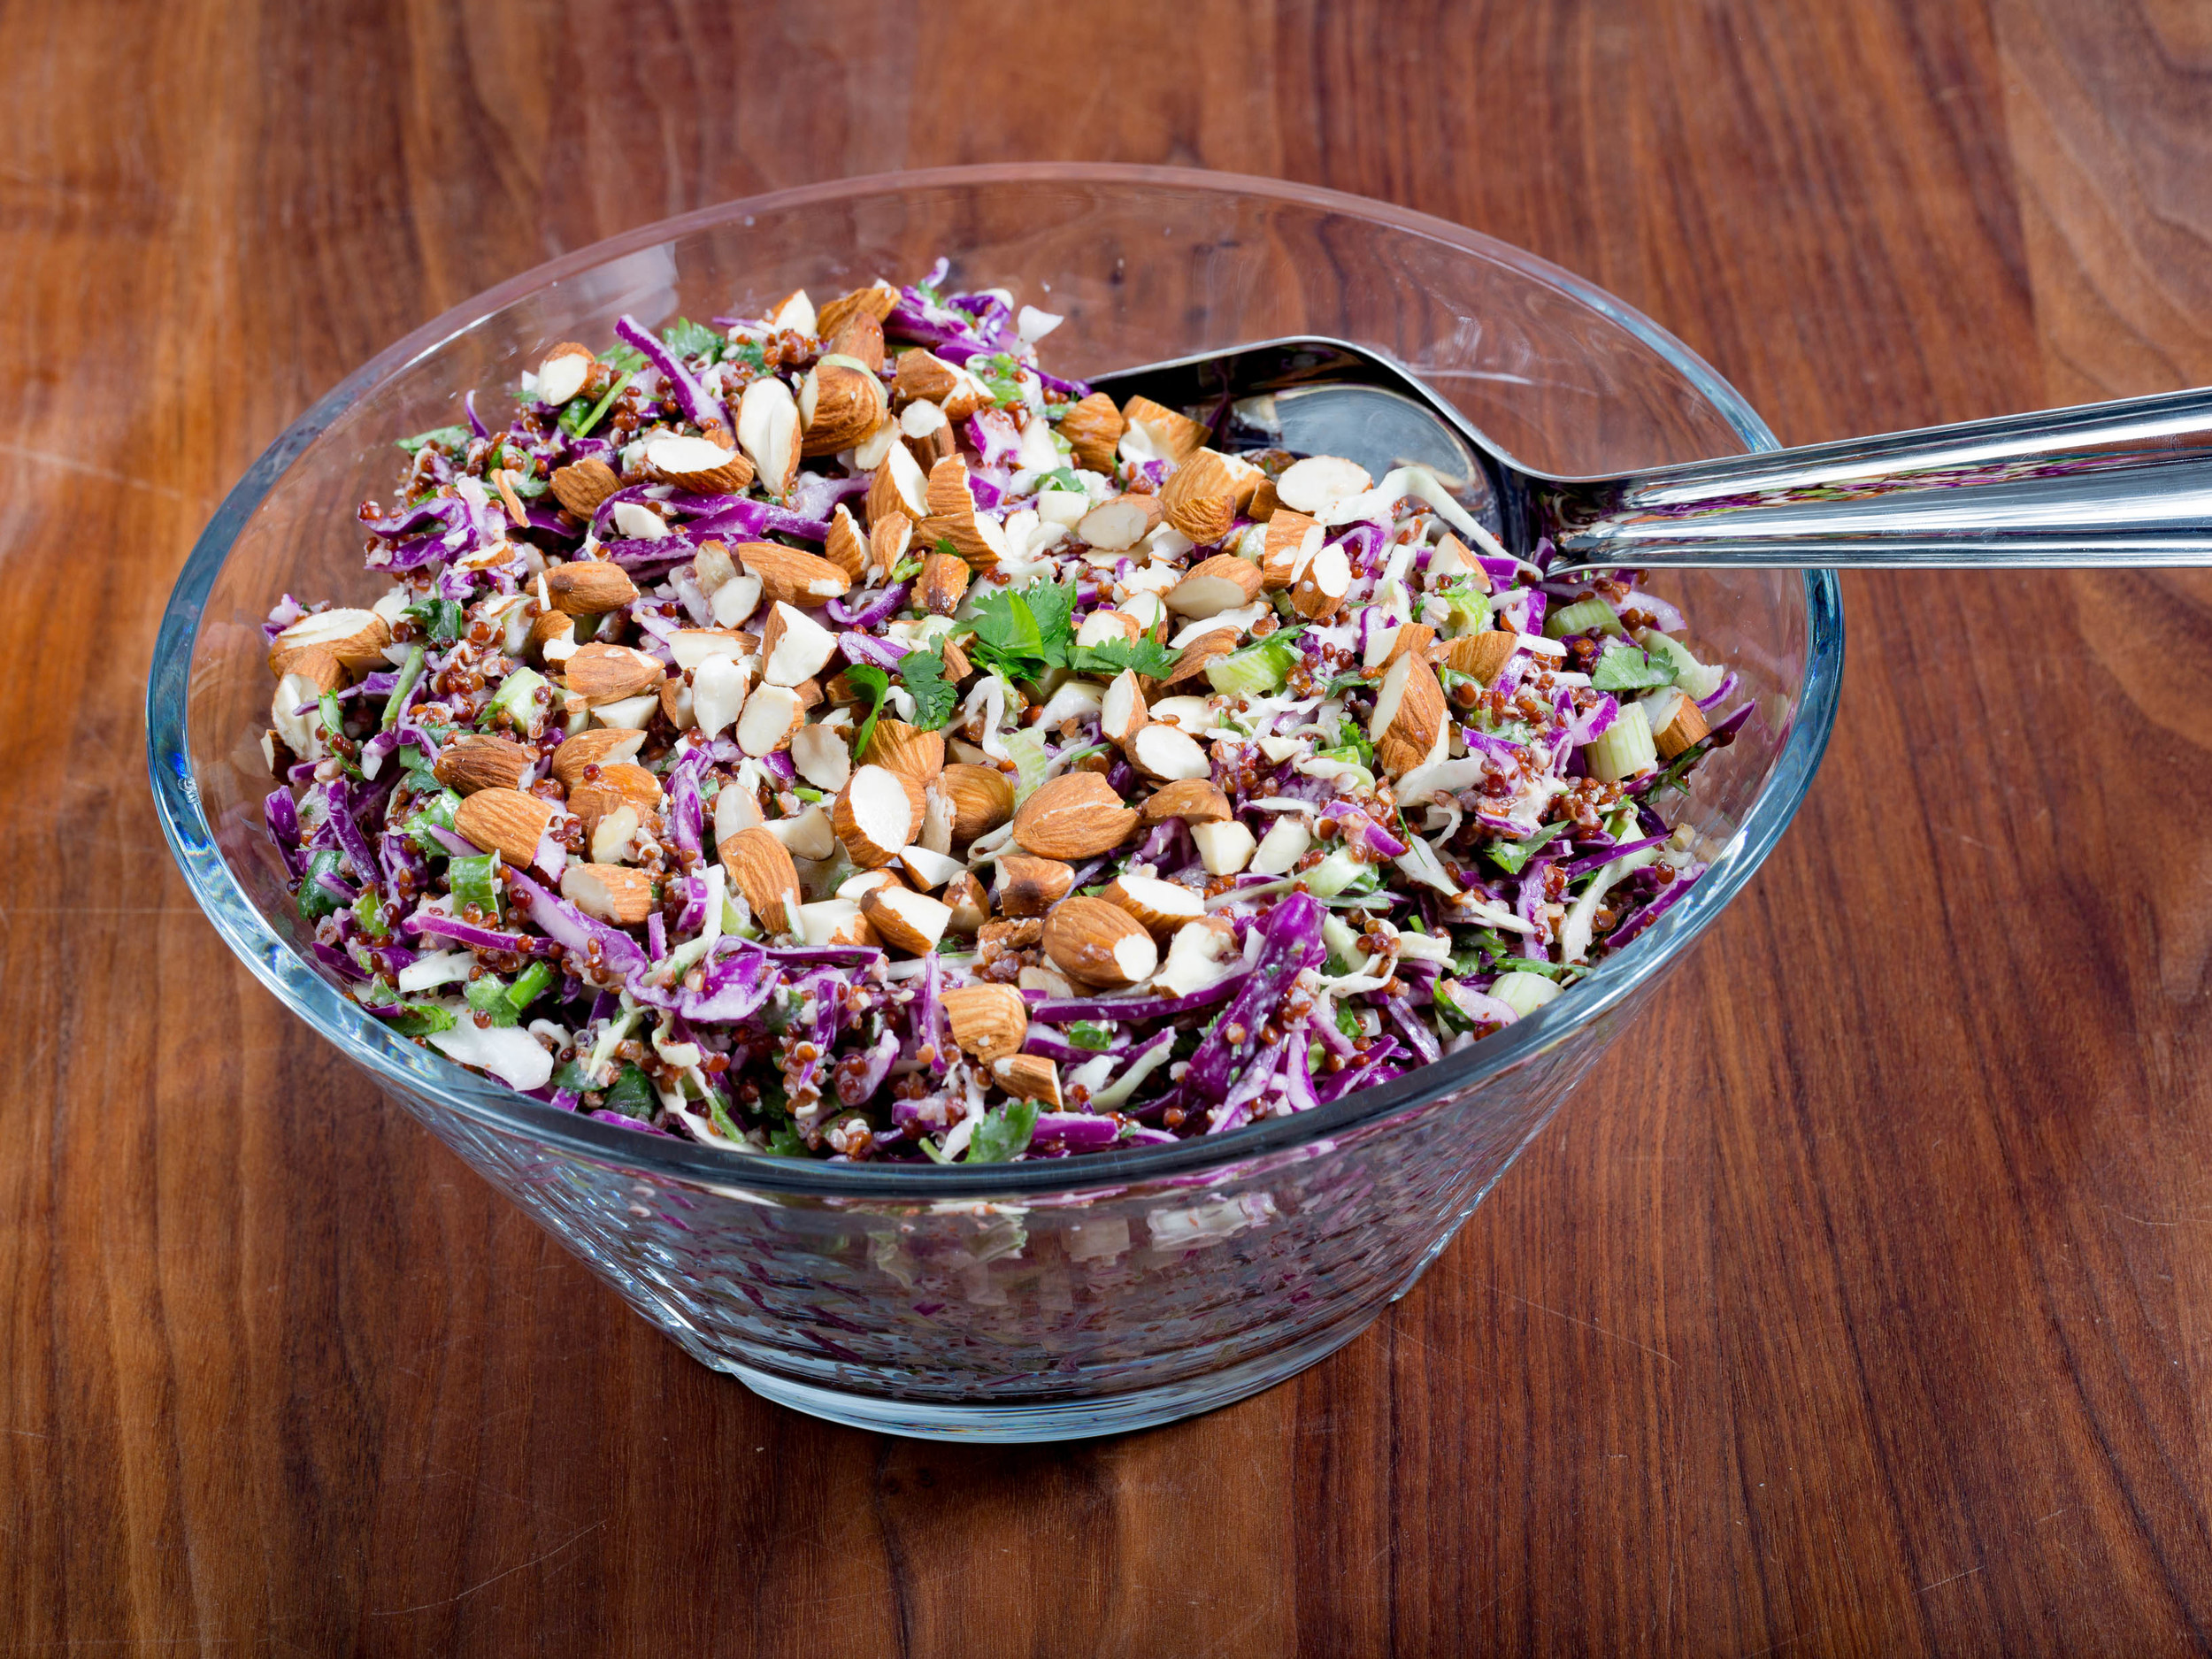 Crunchy Quinoa Slaw with Almond & Ginger Dressing